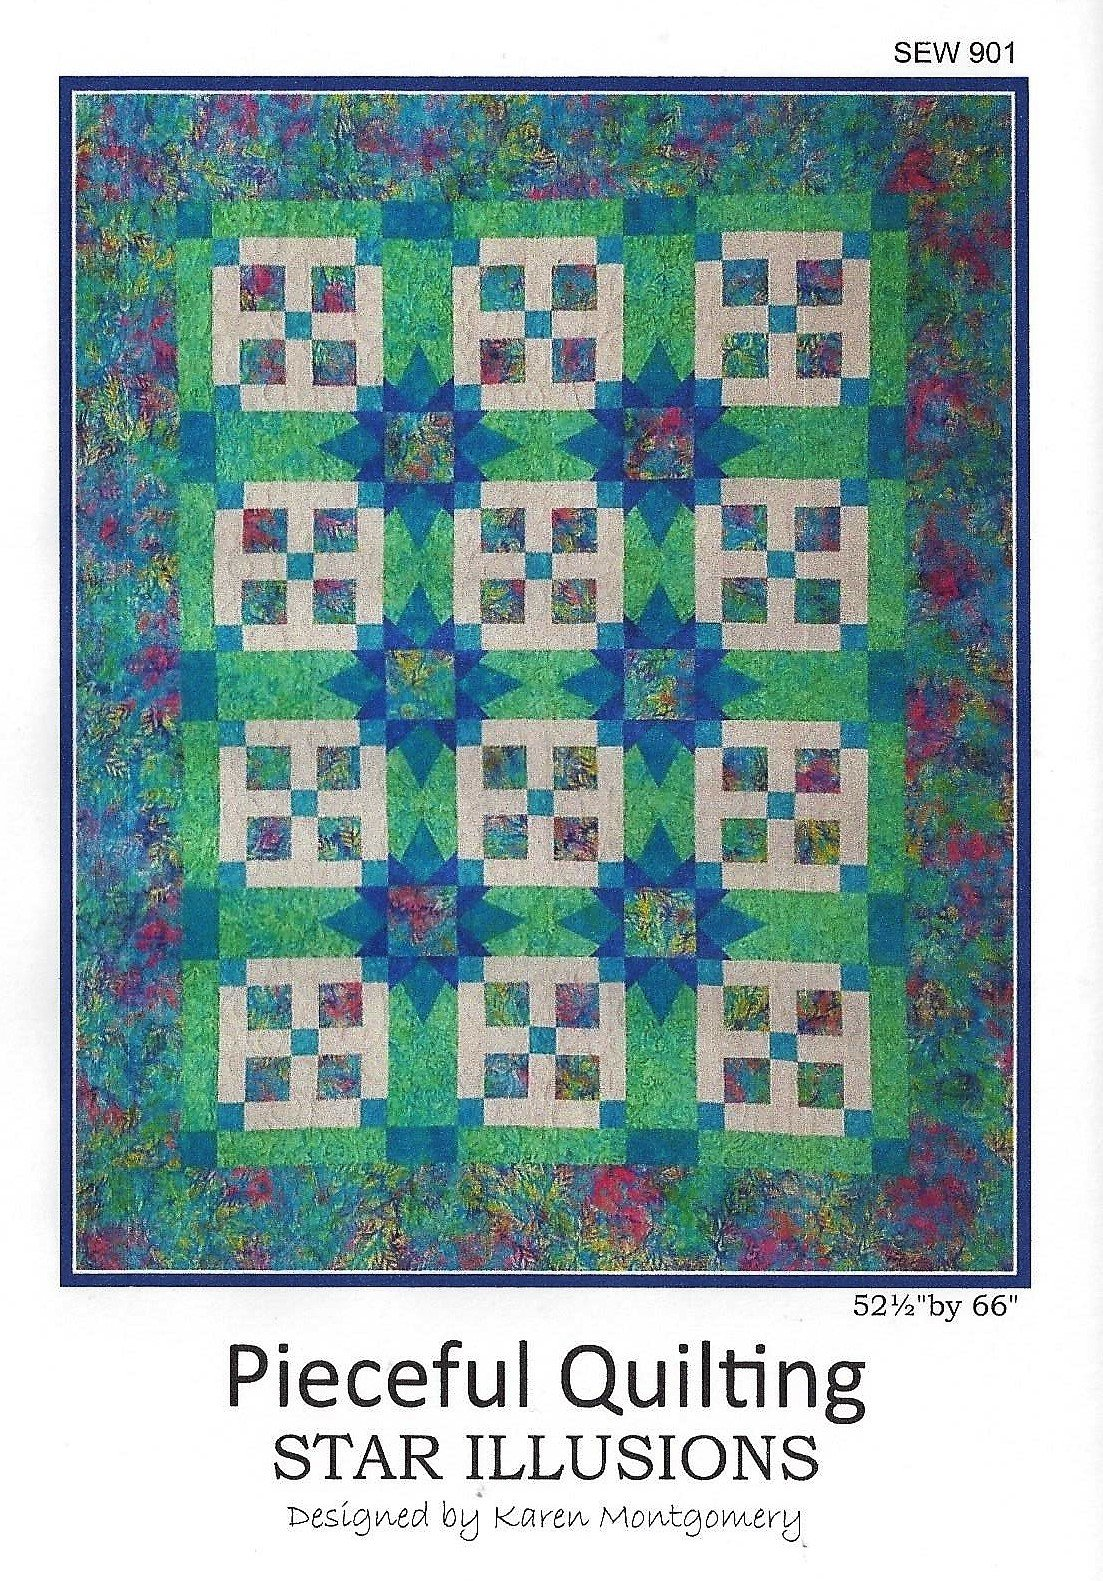 Star Illusions Sewposium Pattern